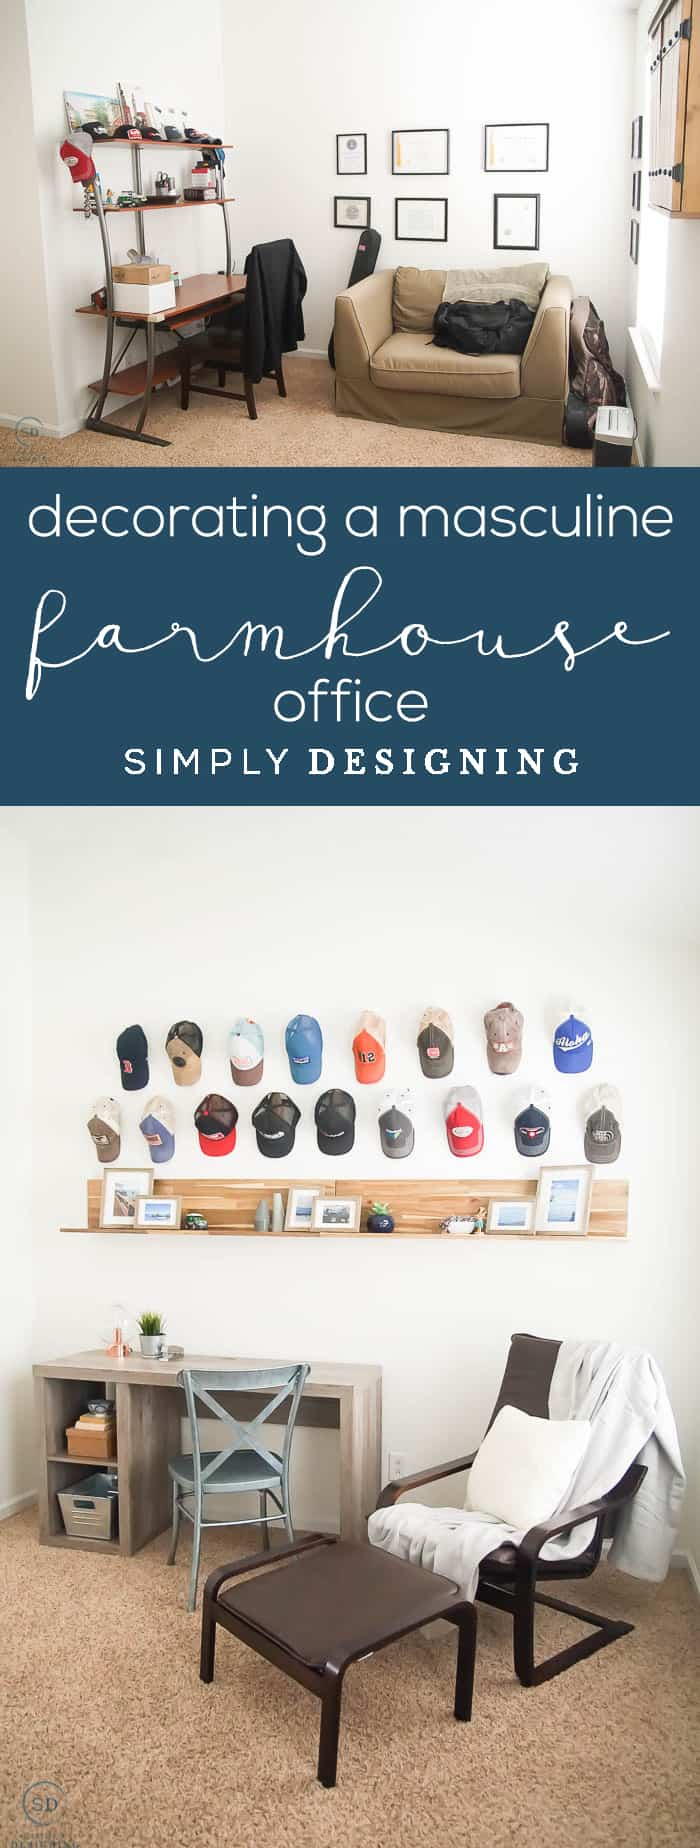 Decorating a Man's Office with Farmhouse Design - before and after - farmhouse office - masculine office - farmhouse desk - industrial farmhouse decor